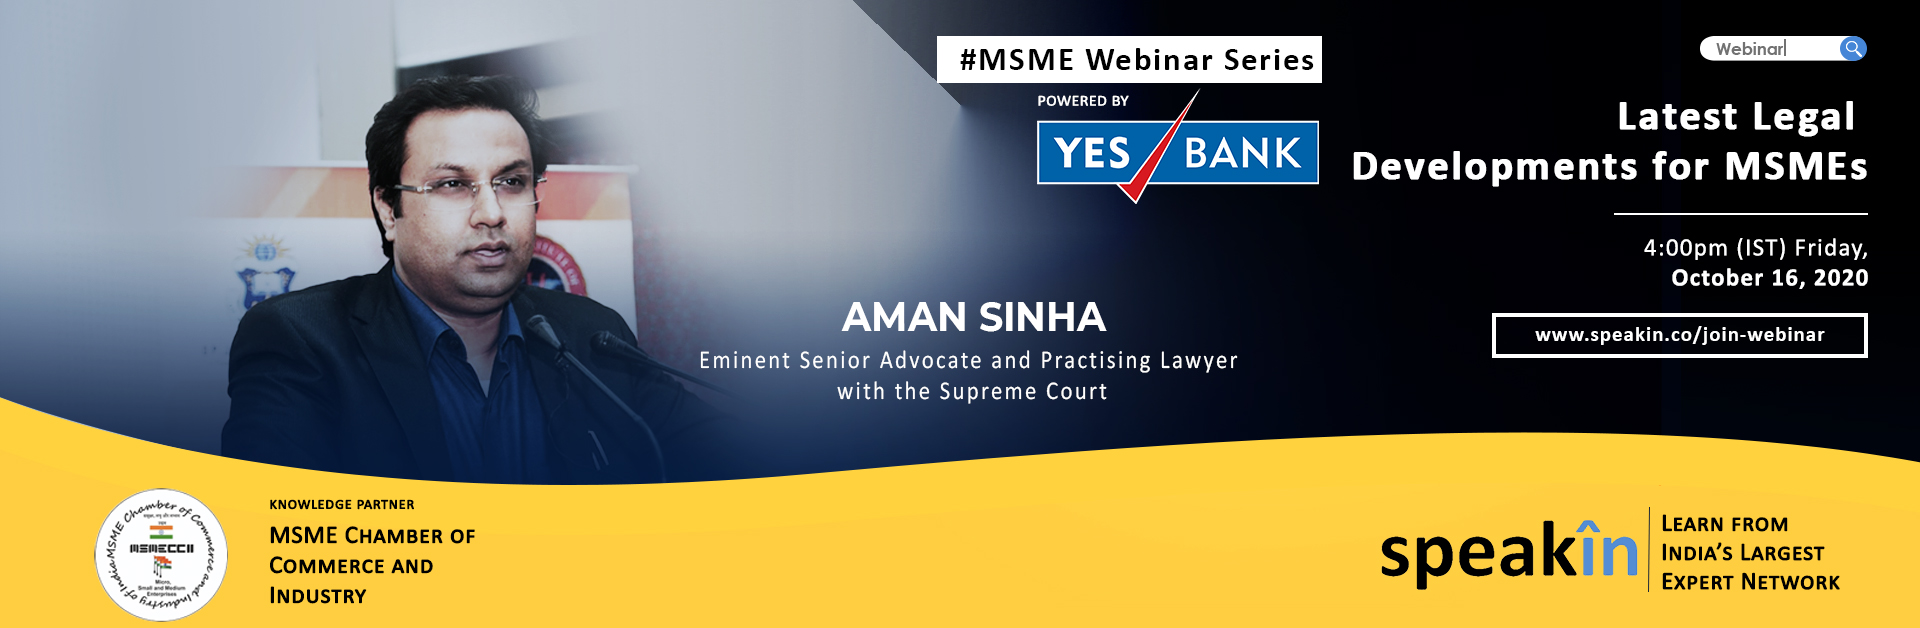 Latest Legal Developments for MSMEs